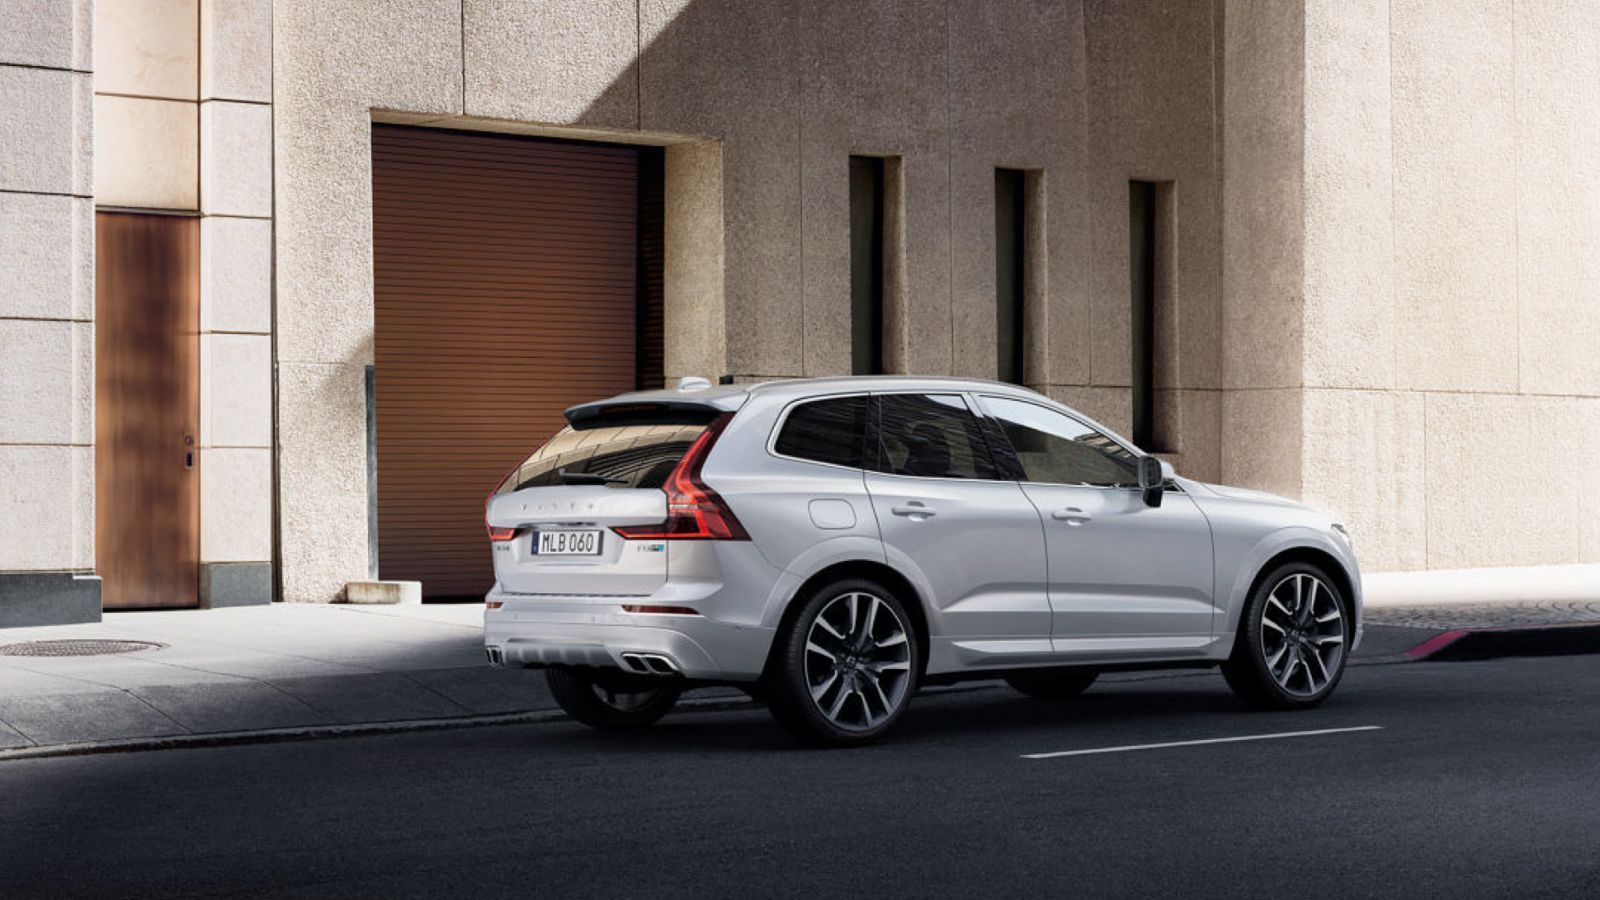 The Volvo Xc60 Polestar Has Almost As Much Power As A Corvette Volvo Xc60 Volvo Pole Star